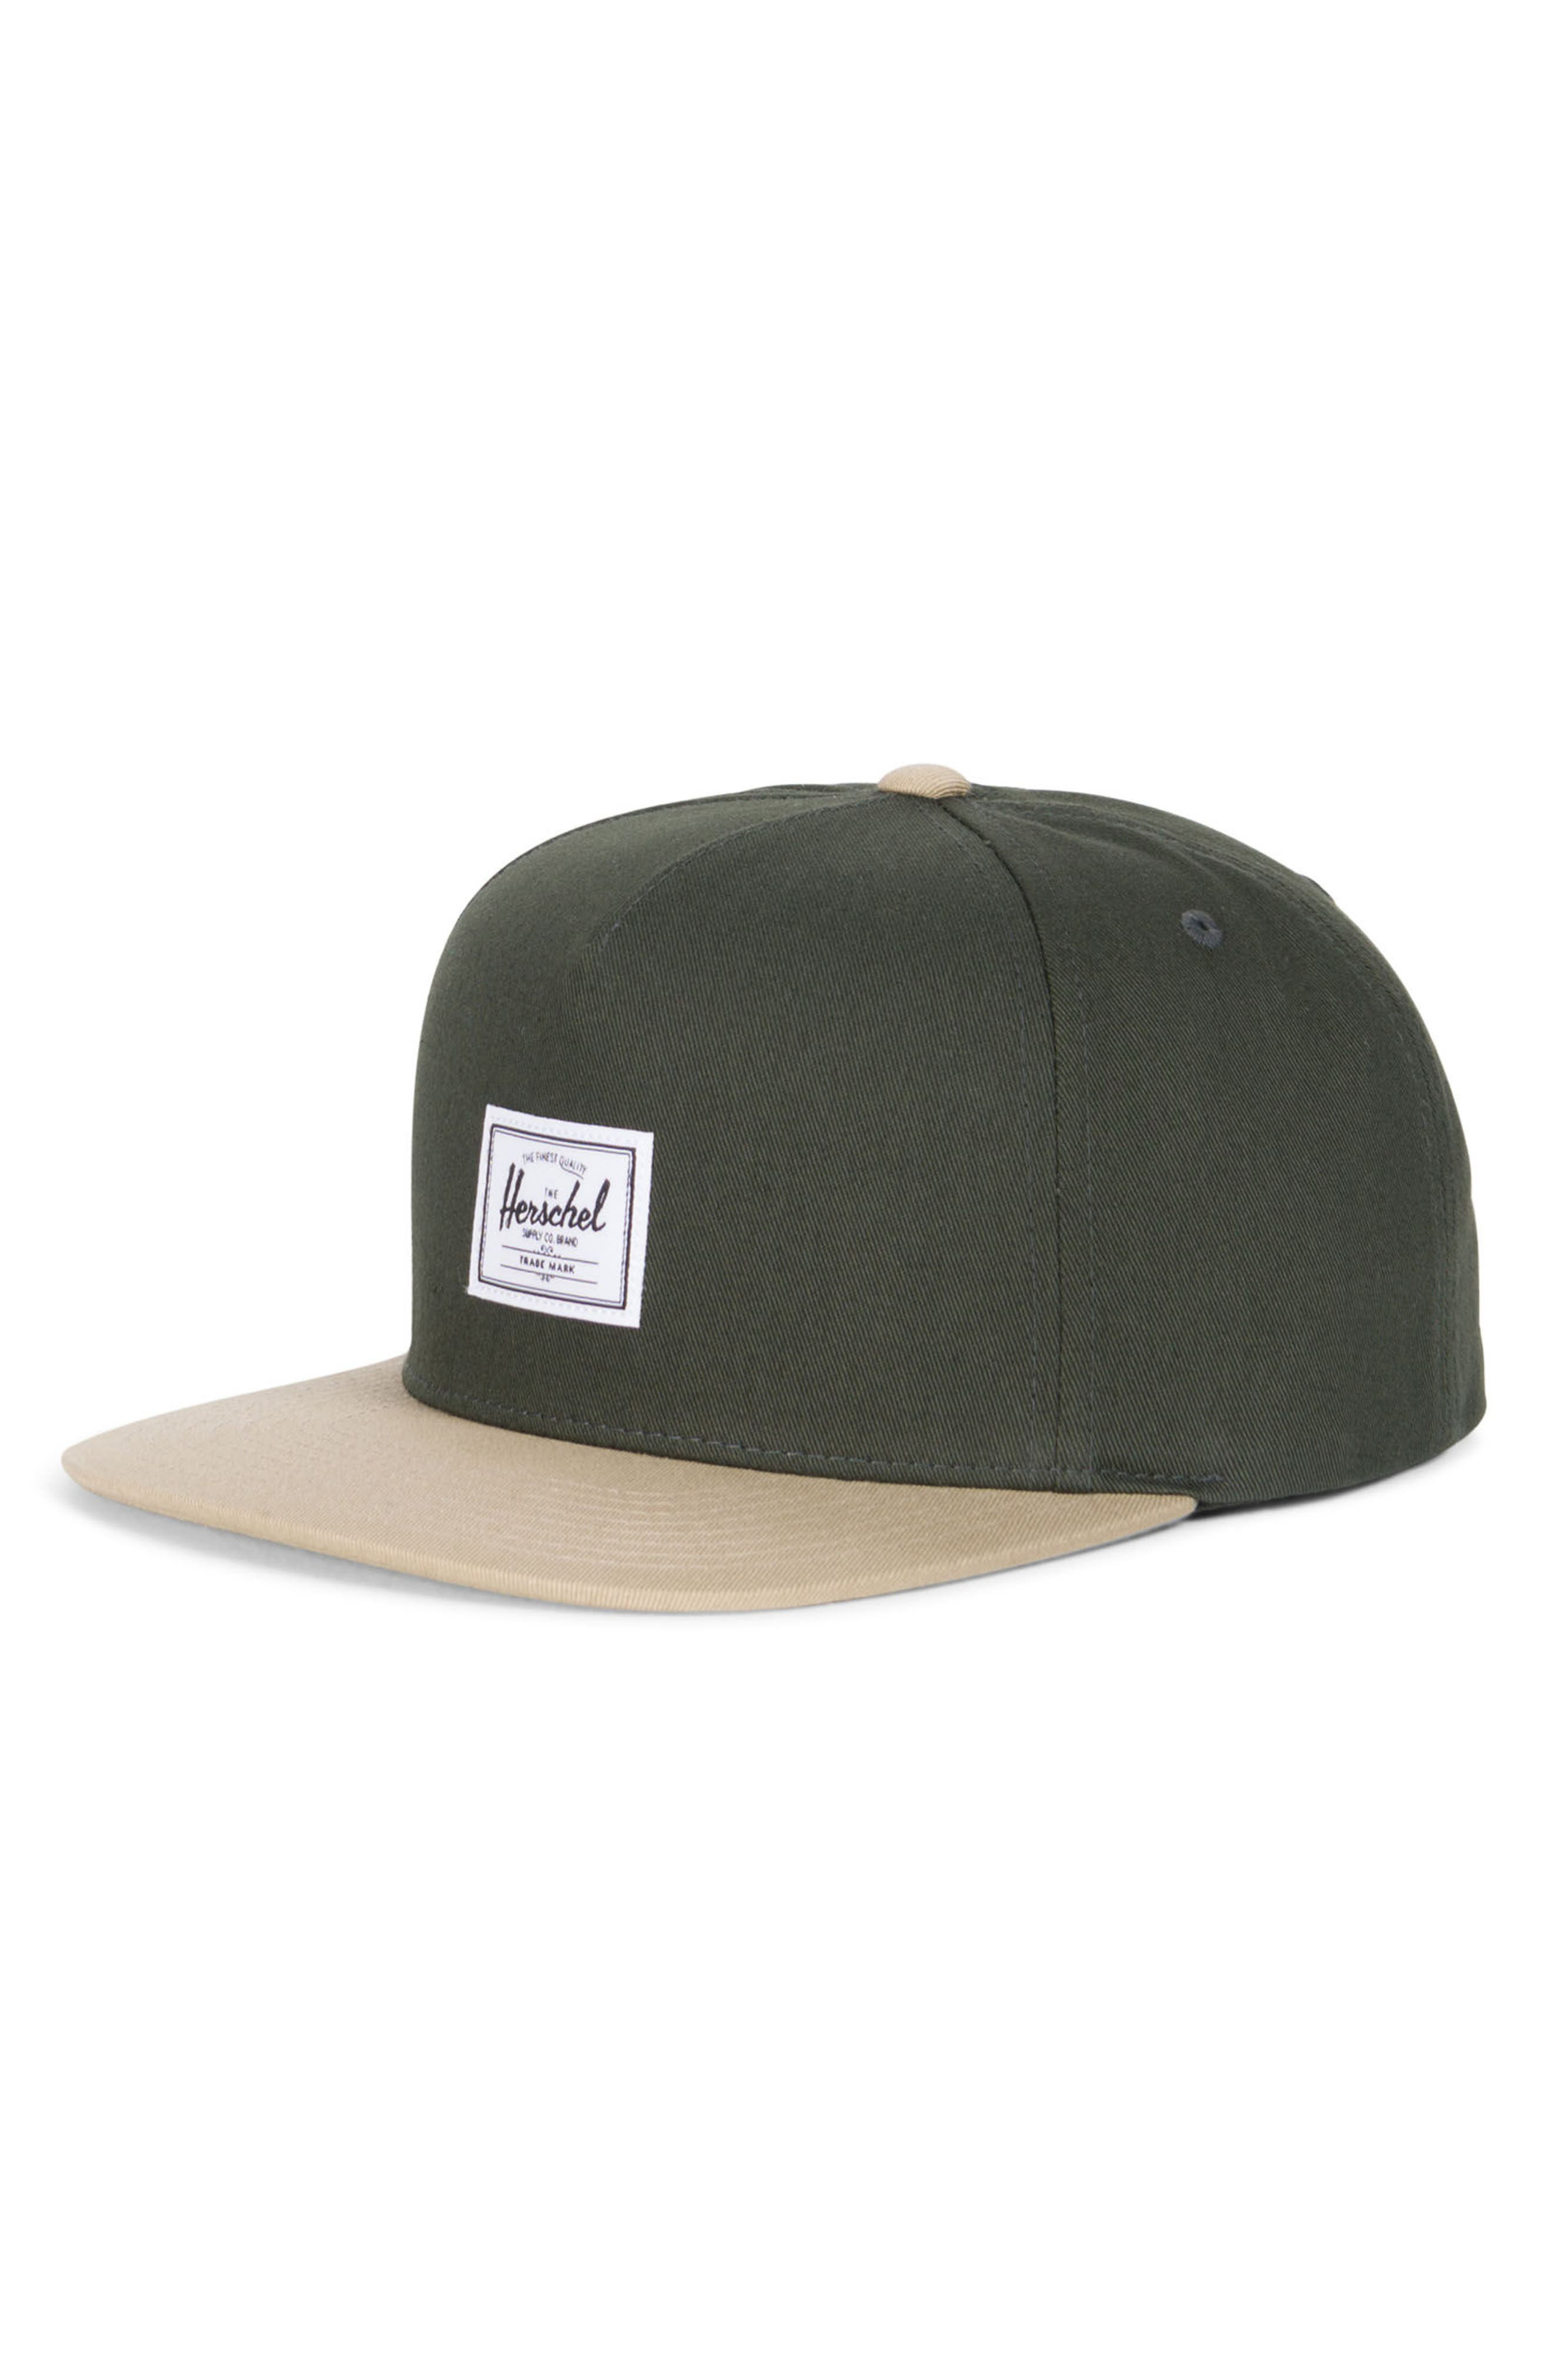 Main Image - Herschel Supply Co. Dean Snapback Baseball Cap